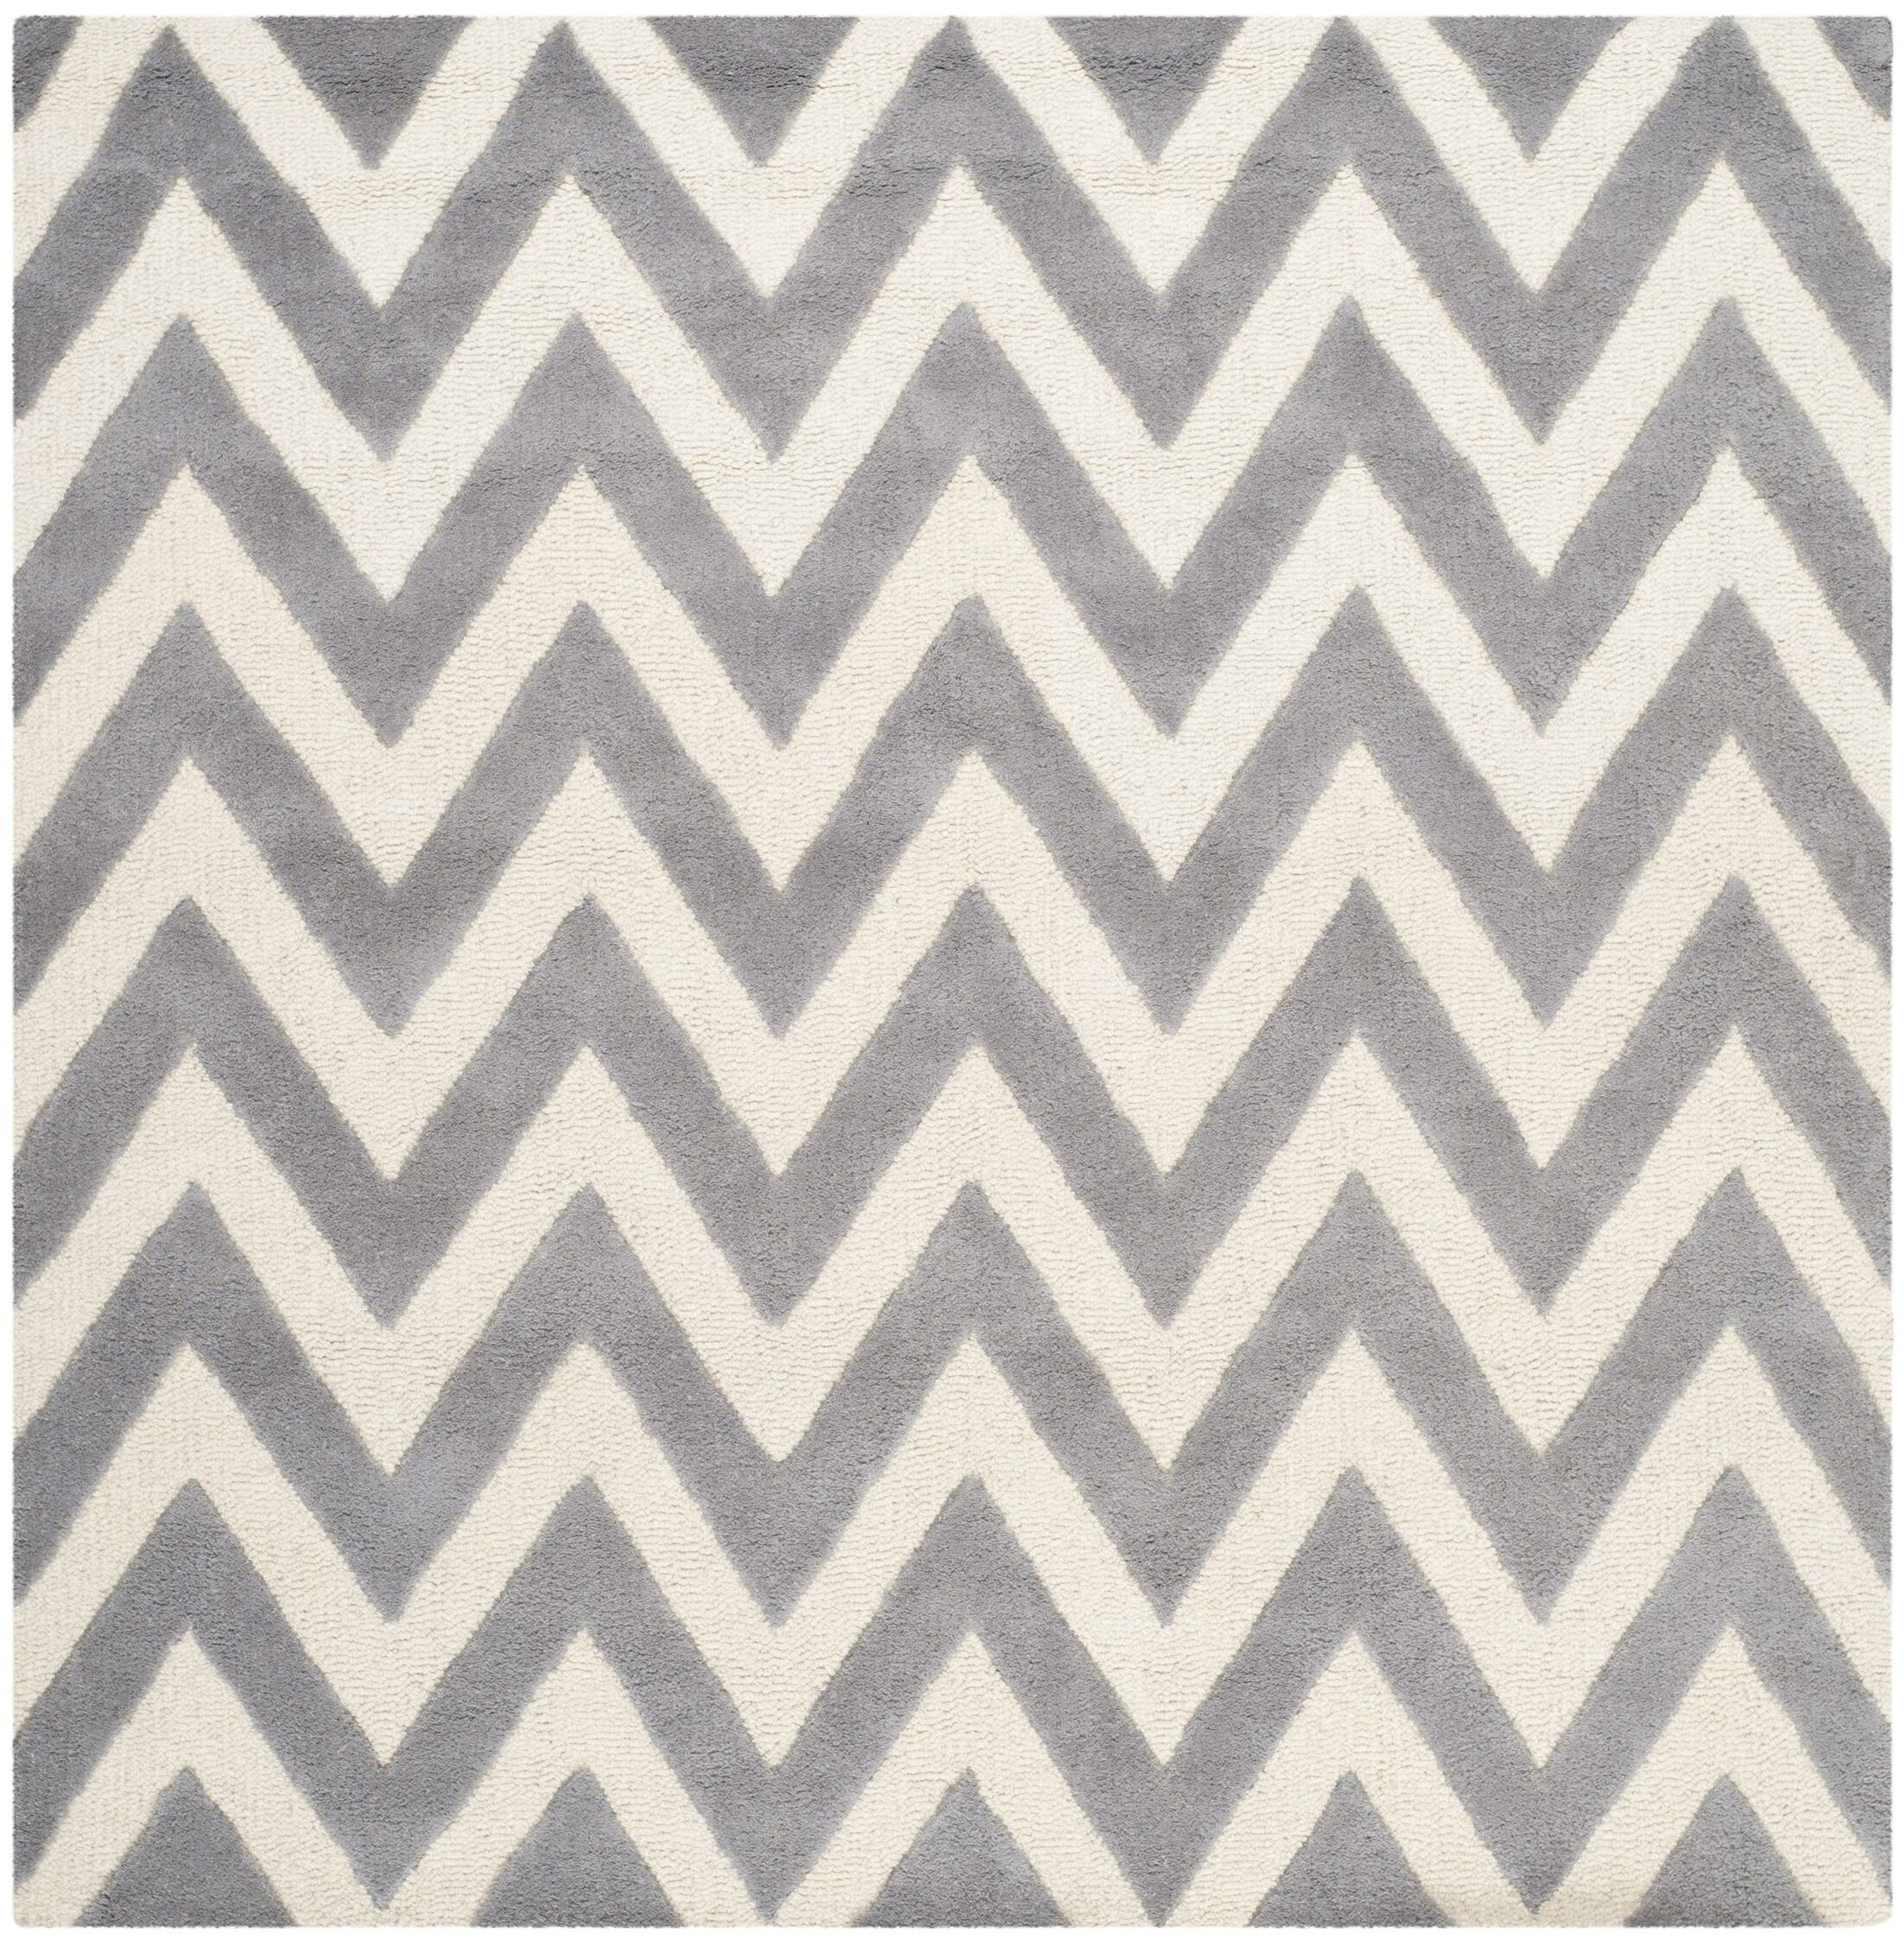 Daveney Hand-Tufted Wool Silver/Ivory Area Rug Rug Size: Square 6'